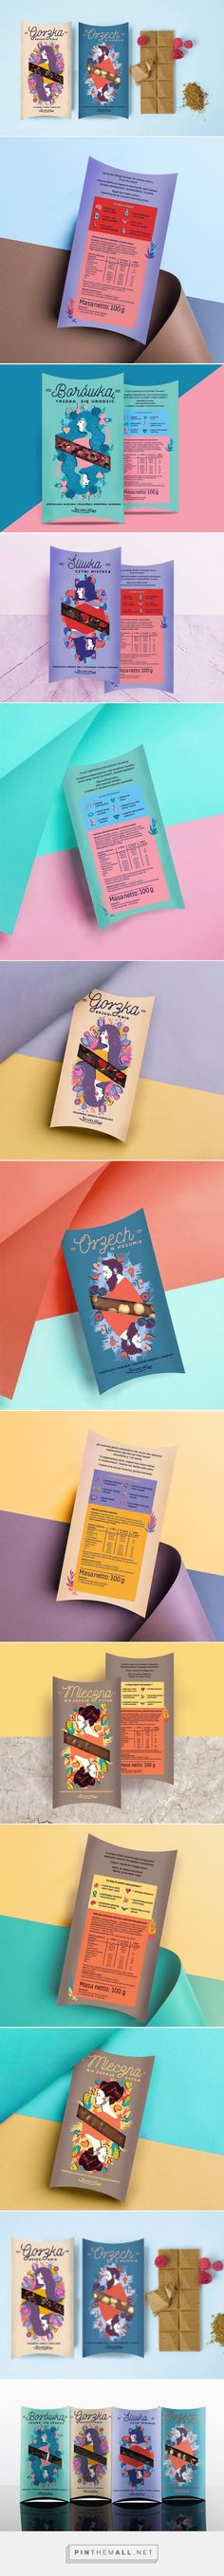 Szabelski Bakery Chocolates - Packaging of the World - Creative Package Design Gallery - http://www.packagingoftheworld.com/2017/08/szabelski-bakery-chocolates.html